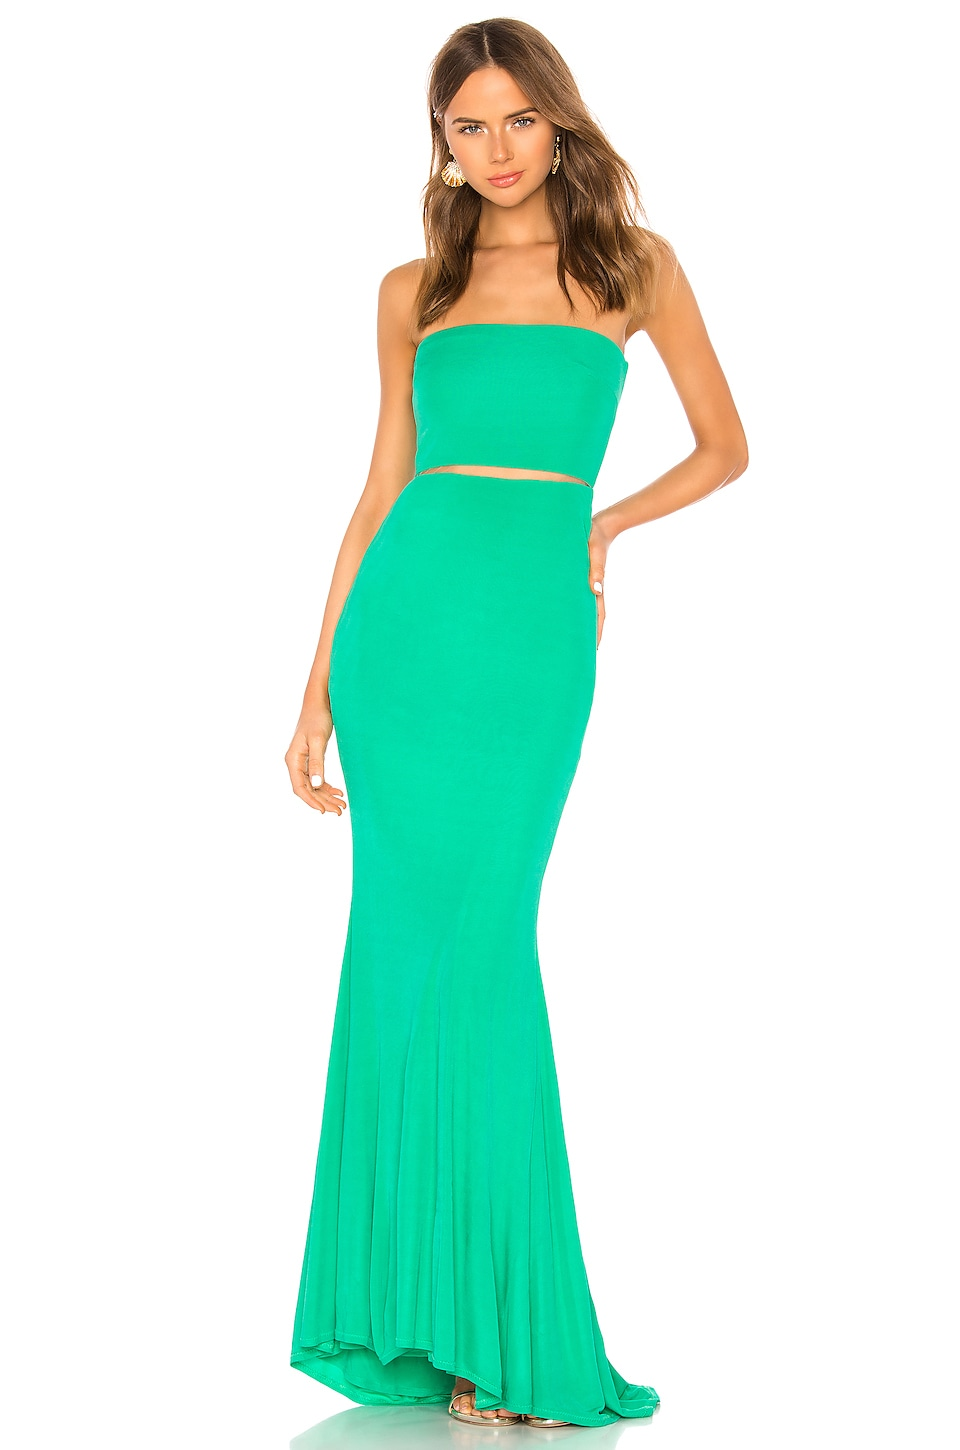 Pryce Gown             Lovers + Friends                                                                                                                                         Sale price:                                                                       CA$ 198.12                                                                                                  Previous price:                                                                       CA$ 303.16 1